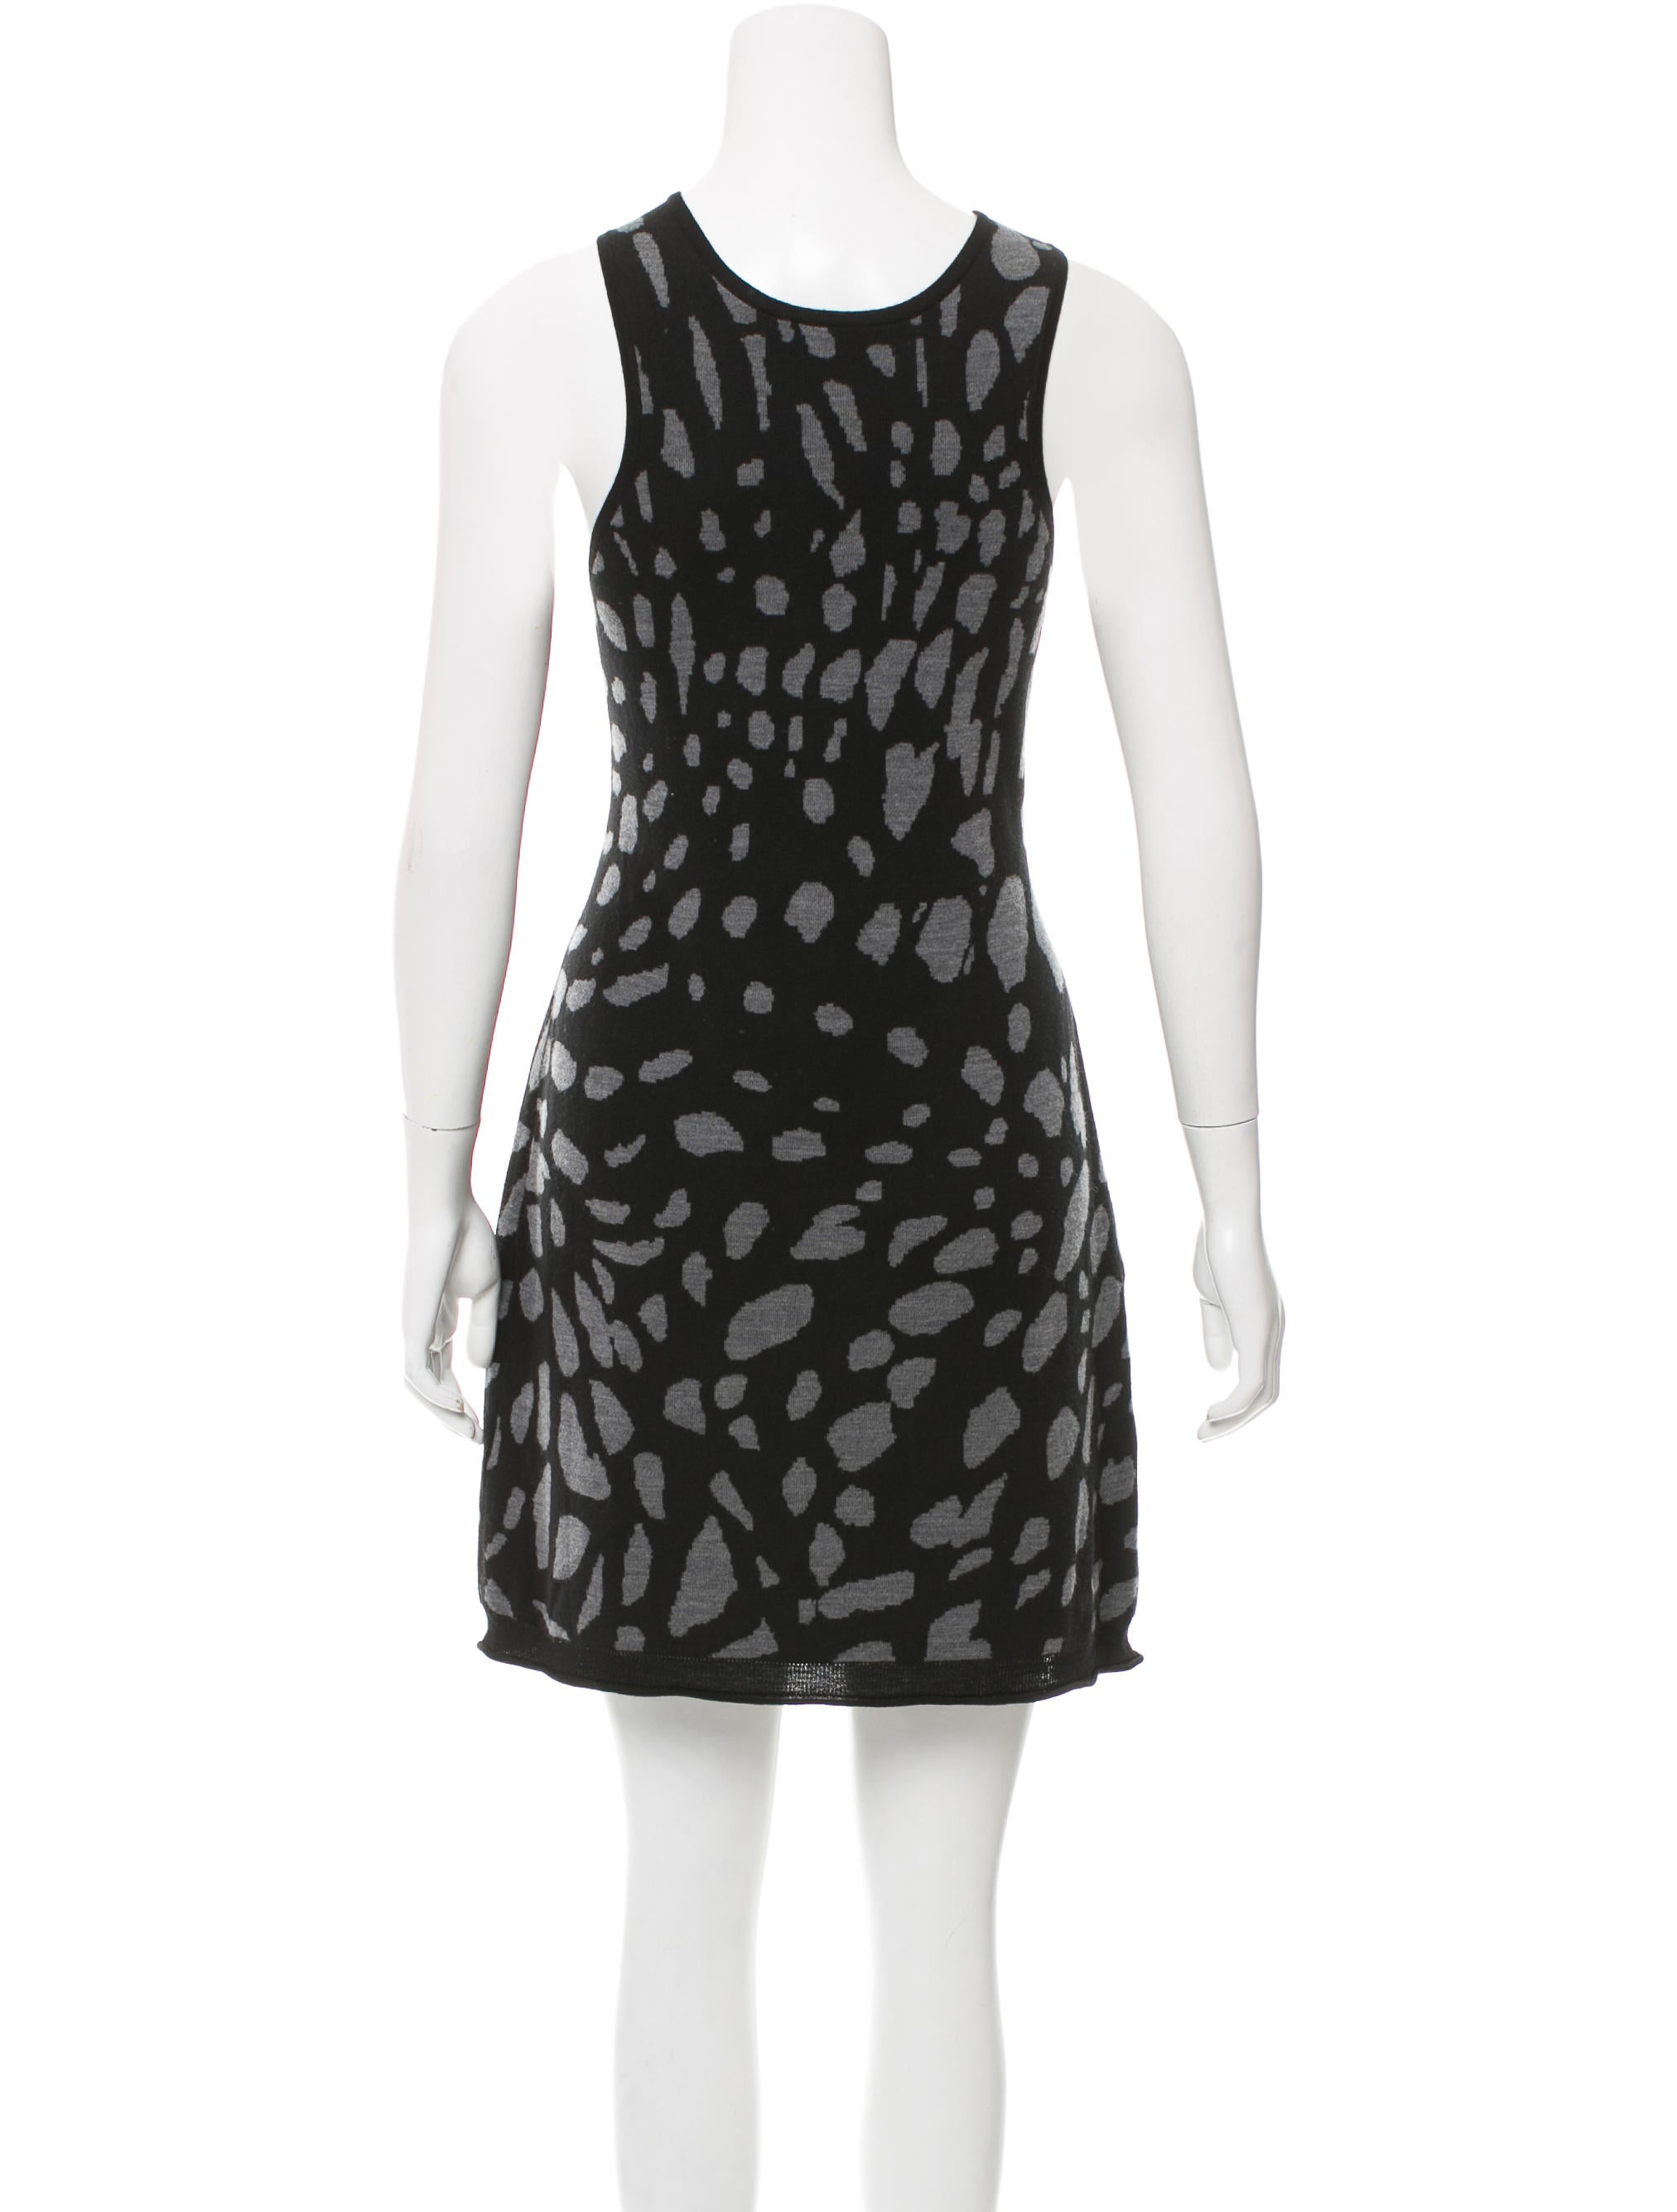 Thakoon Wool Knit Dress - Clothing - WTHAK24840 The RealReal